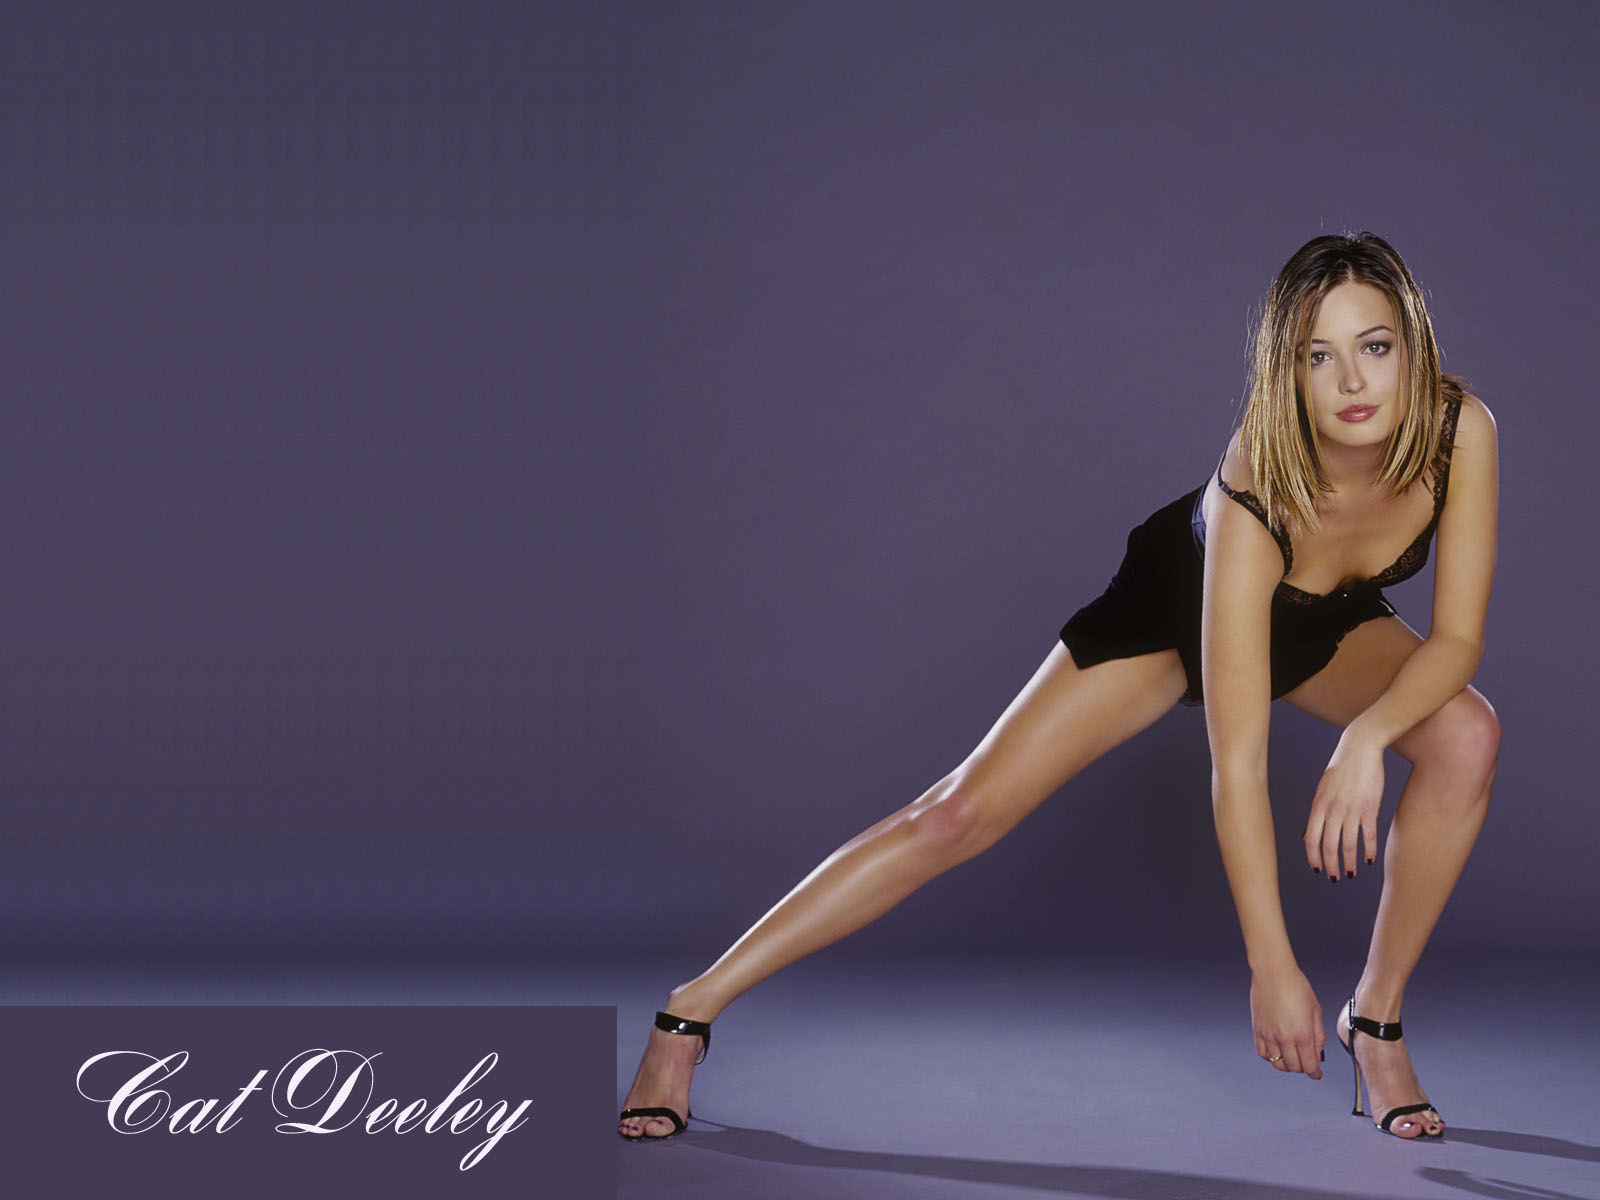 Cat Deeley Wallpaper